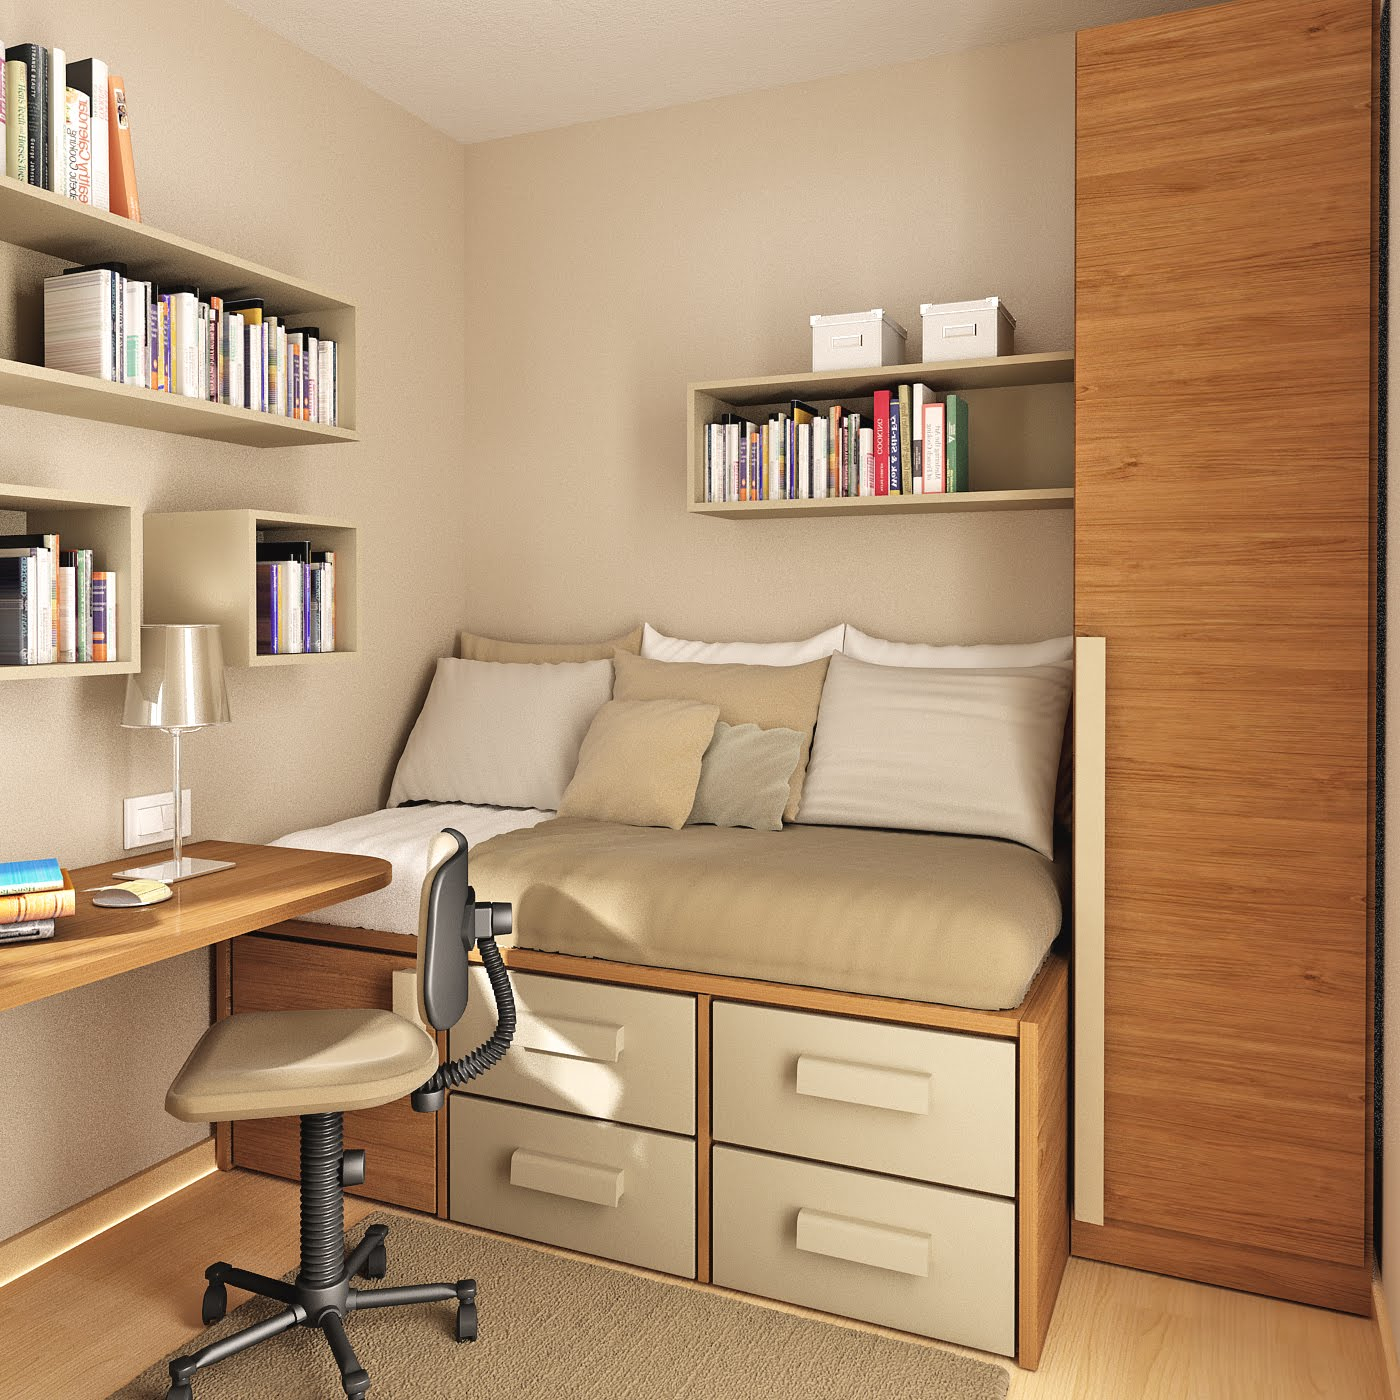 Study Room Interior Design 1400 x 1400